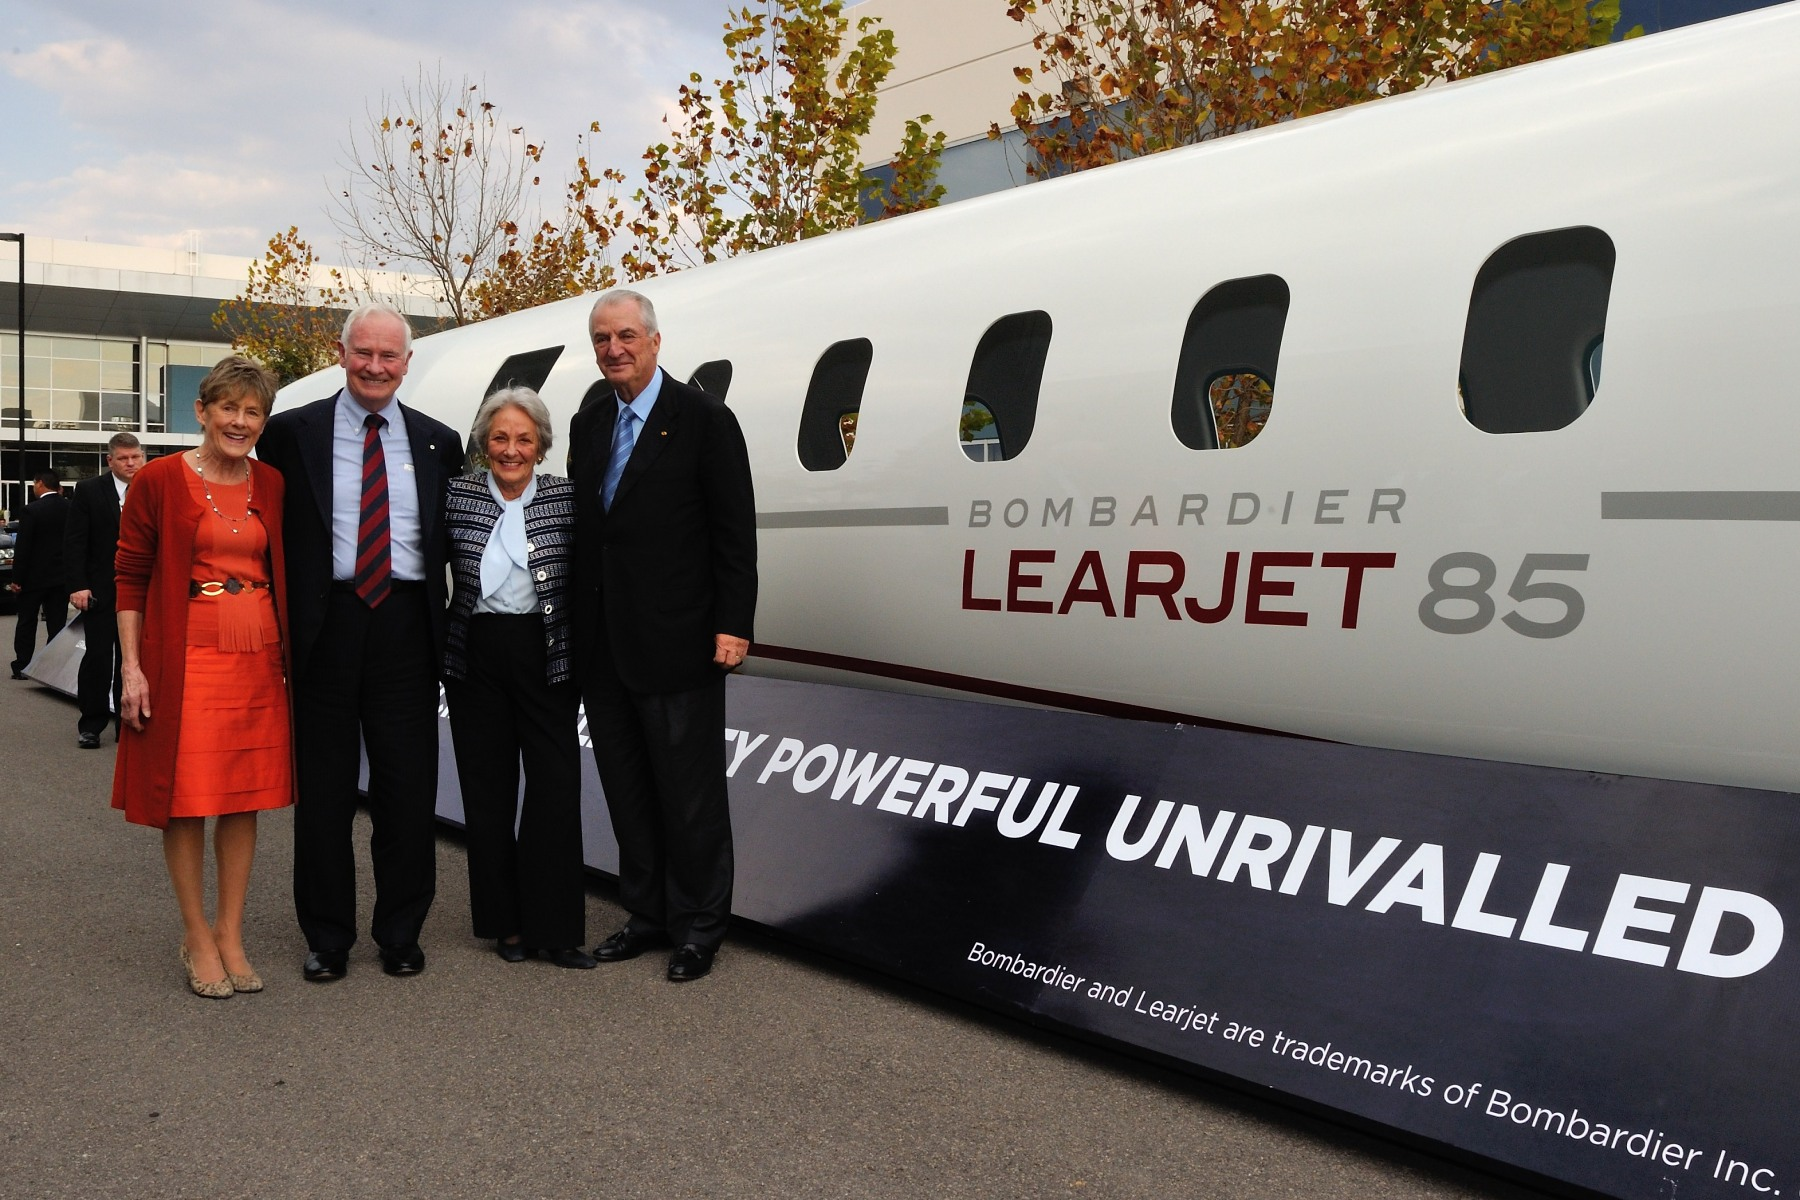 The Querétaro manufacturing facility is responsible for the fabrication of the Learjet 85 aircraft's major composite structures, including fuselage lay-up and sub-system installation; wiring harness fabrication and installation; wing assembly; and horizontal and vertical stabilizer assemblies. The Governor General and his spouse are seen here with Mr. Laurent Beaudoin and his spouse.